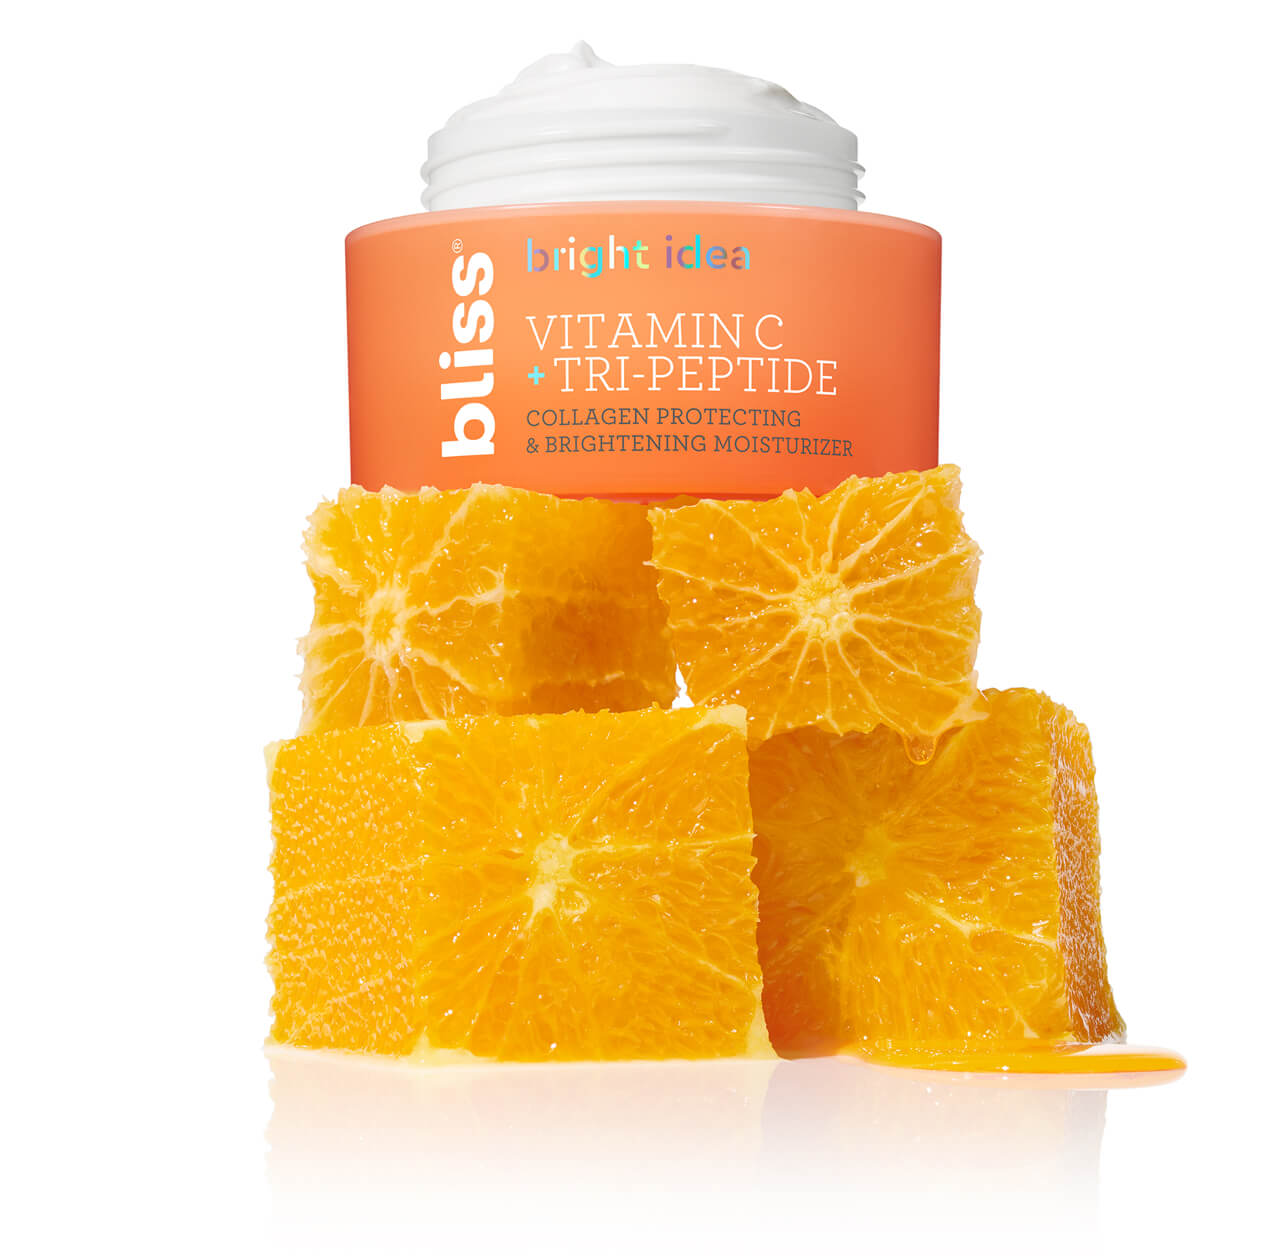 Bliss - Vitamin C Skincare: Skin Brightening Serum, Eye Cream & More | Bliss